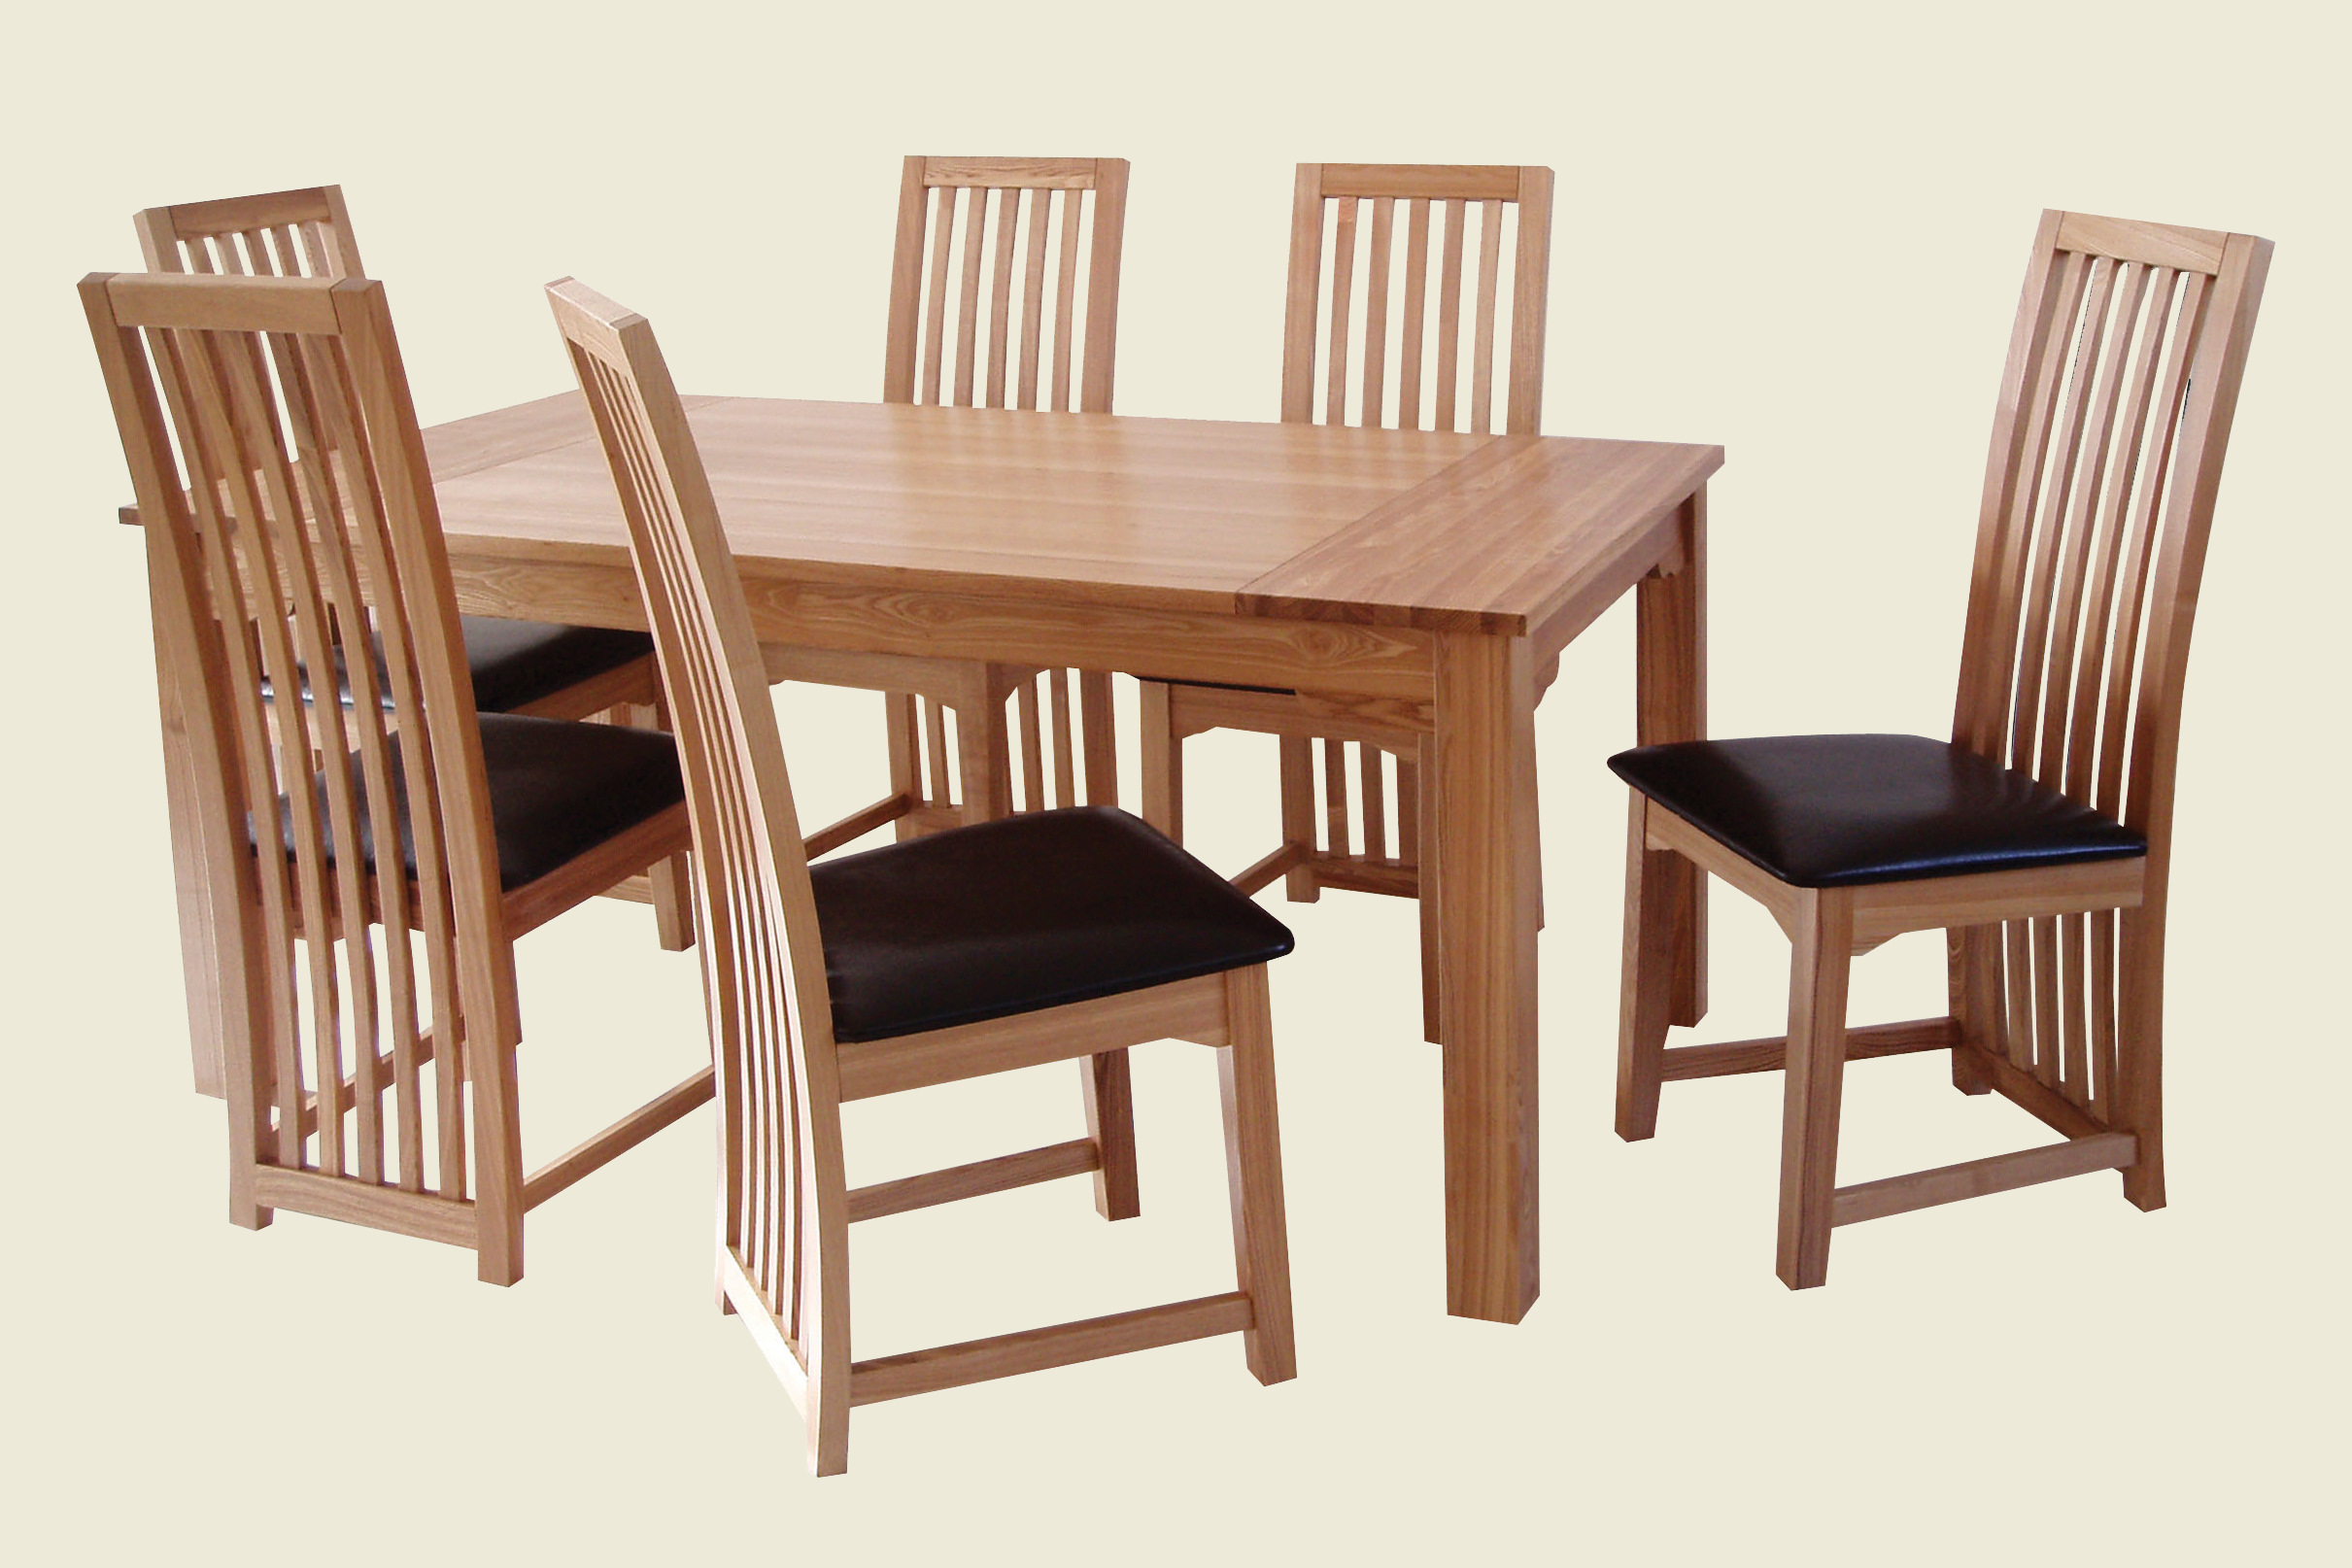 Zz ashbourne dining table 6 chair set for Dining table set for 6